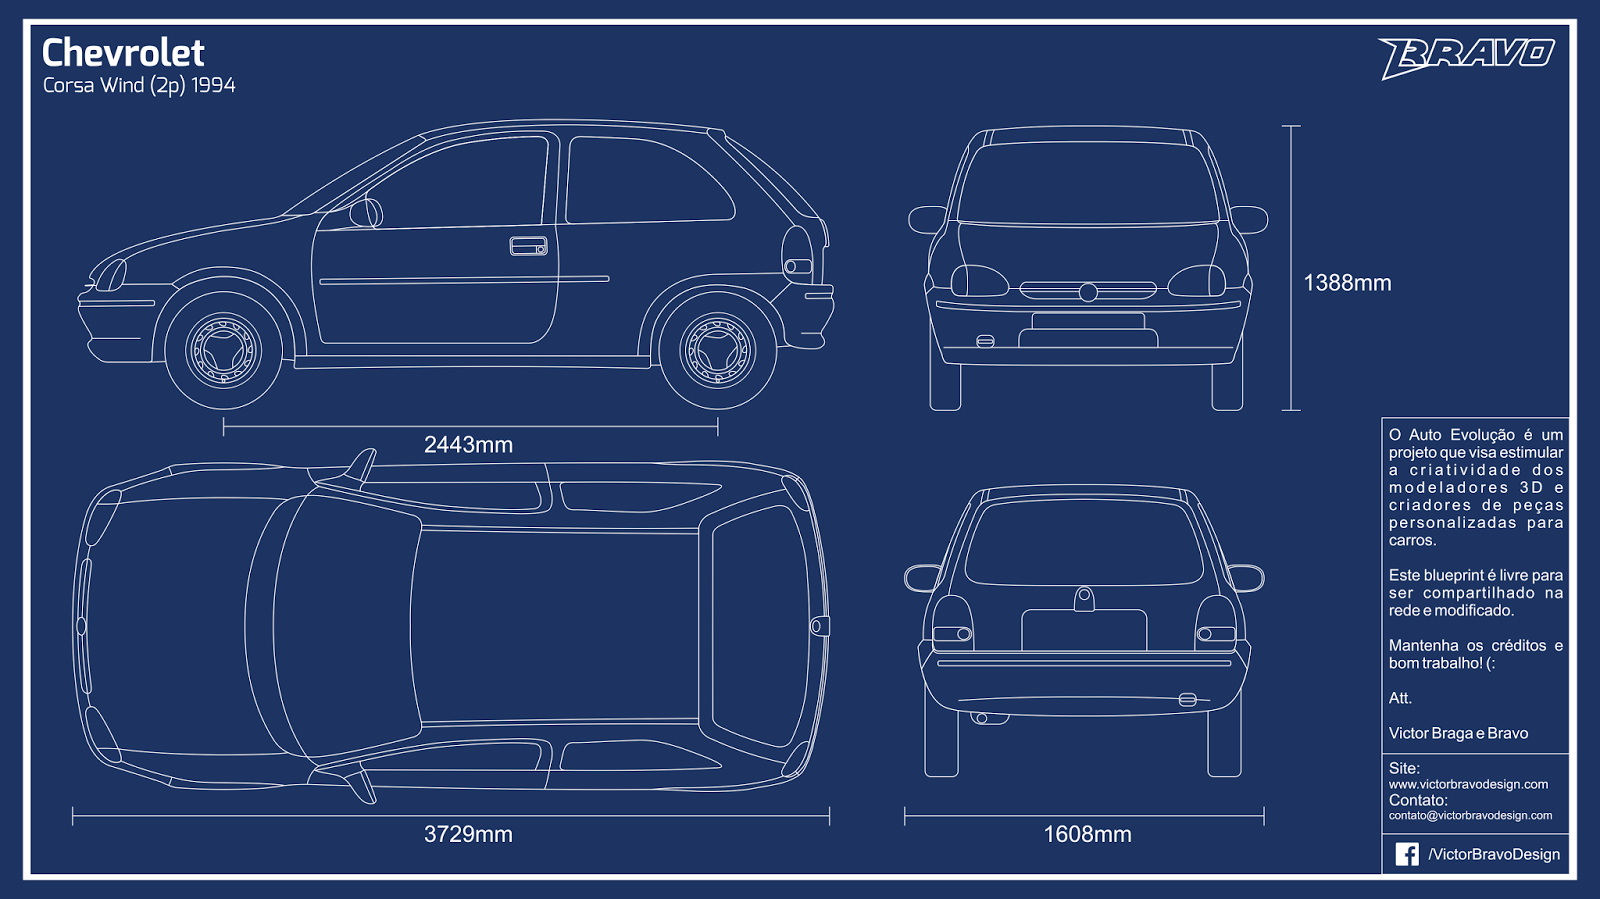 Imagem do blueprint do Chevrolet Corsa Wind (2p) 1994